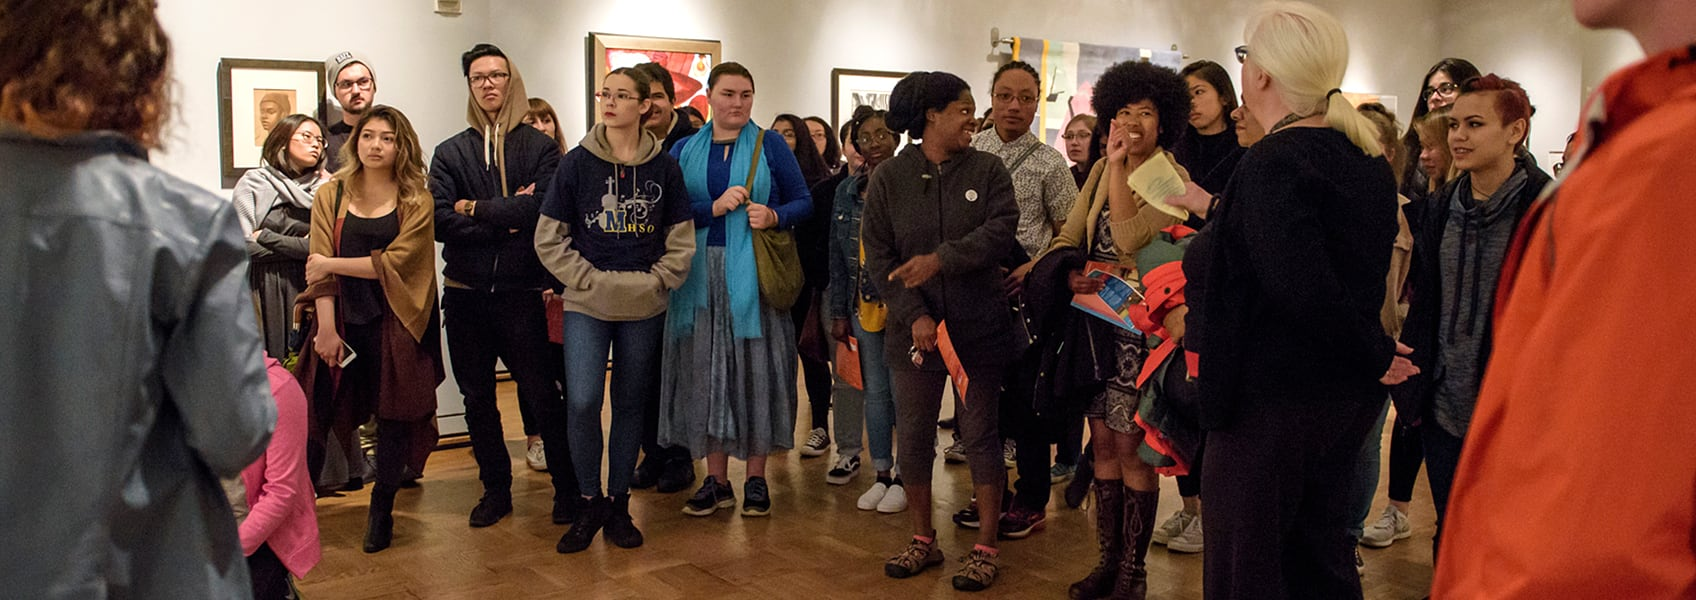 A group of visitors on a tour in one of the museum's galleries.